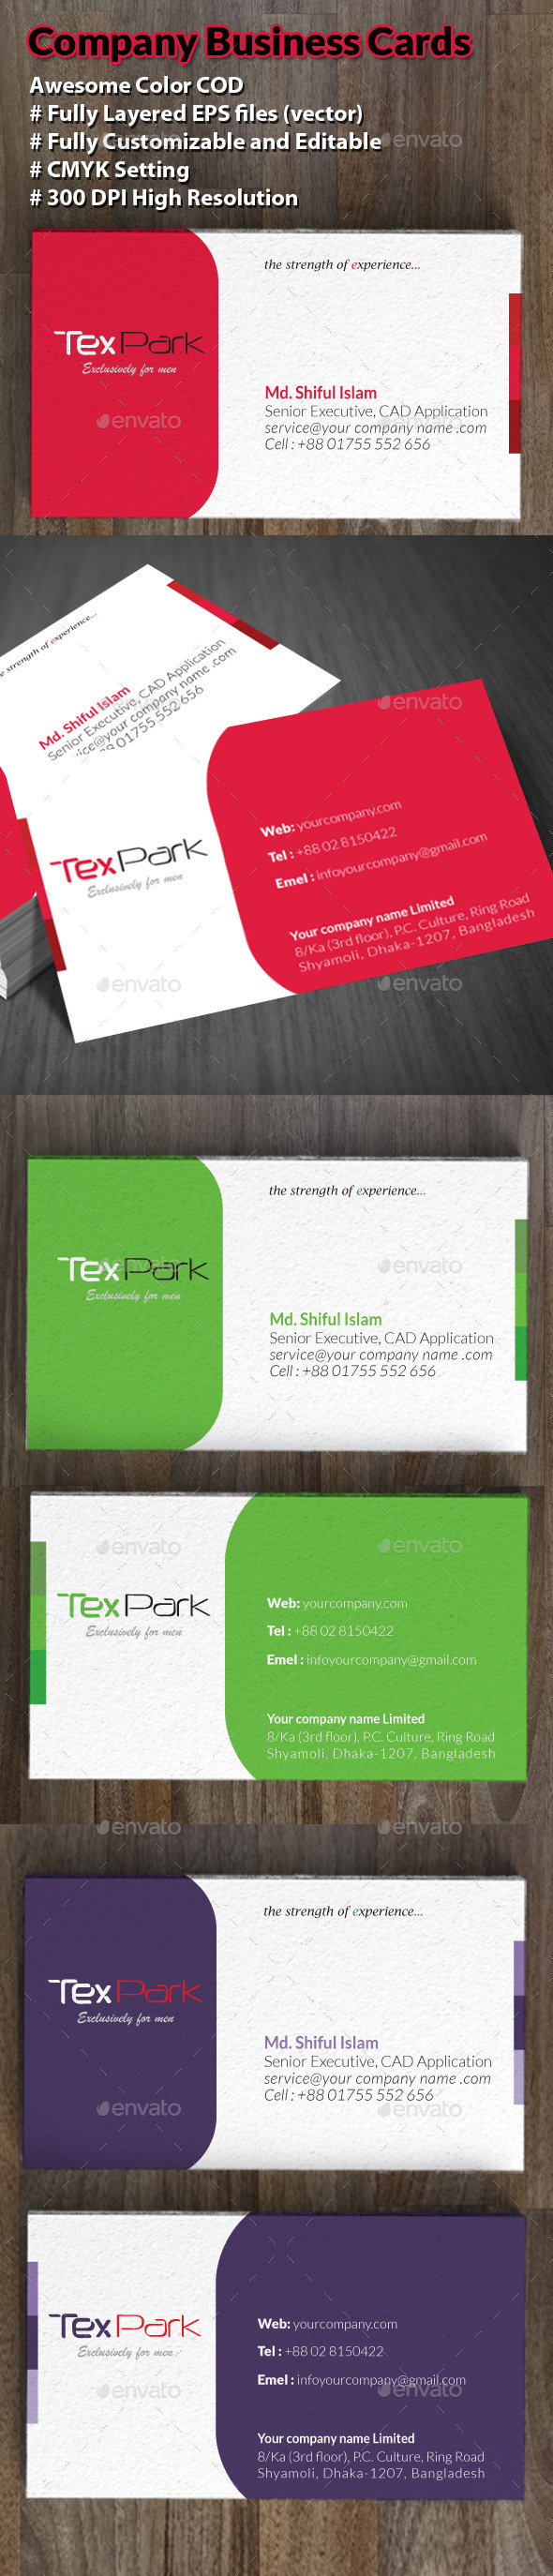 Company Business Cards - Business Cards Print Templates